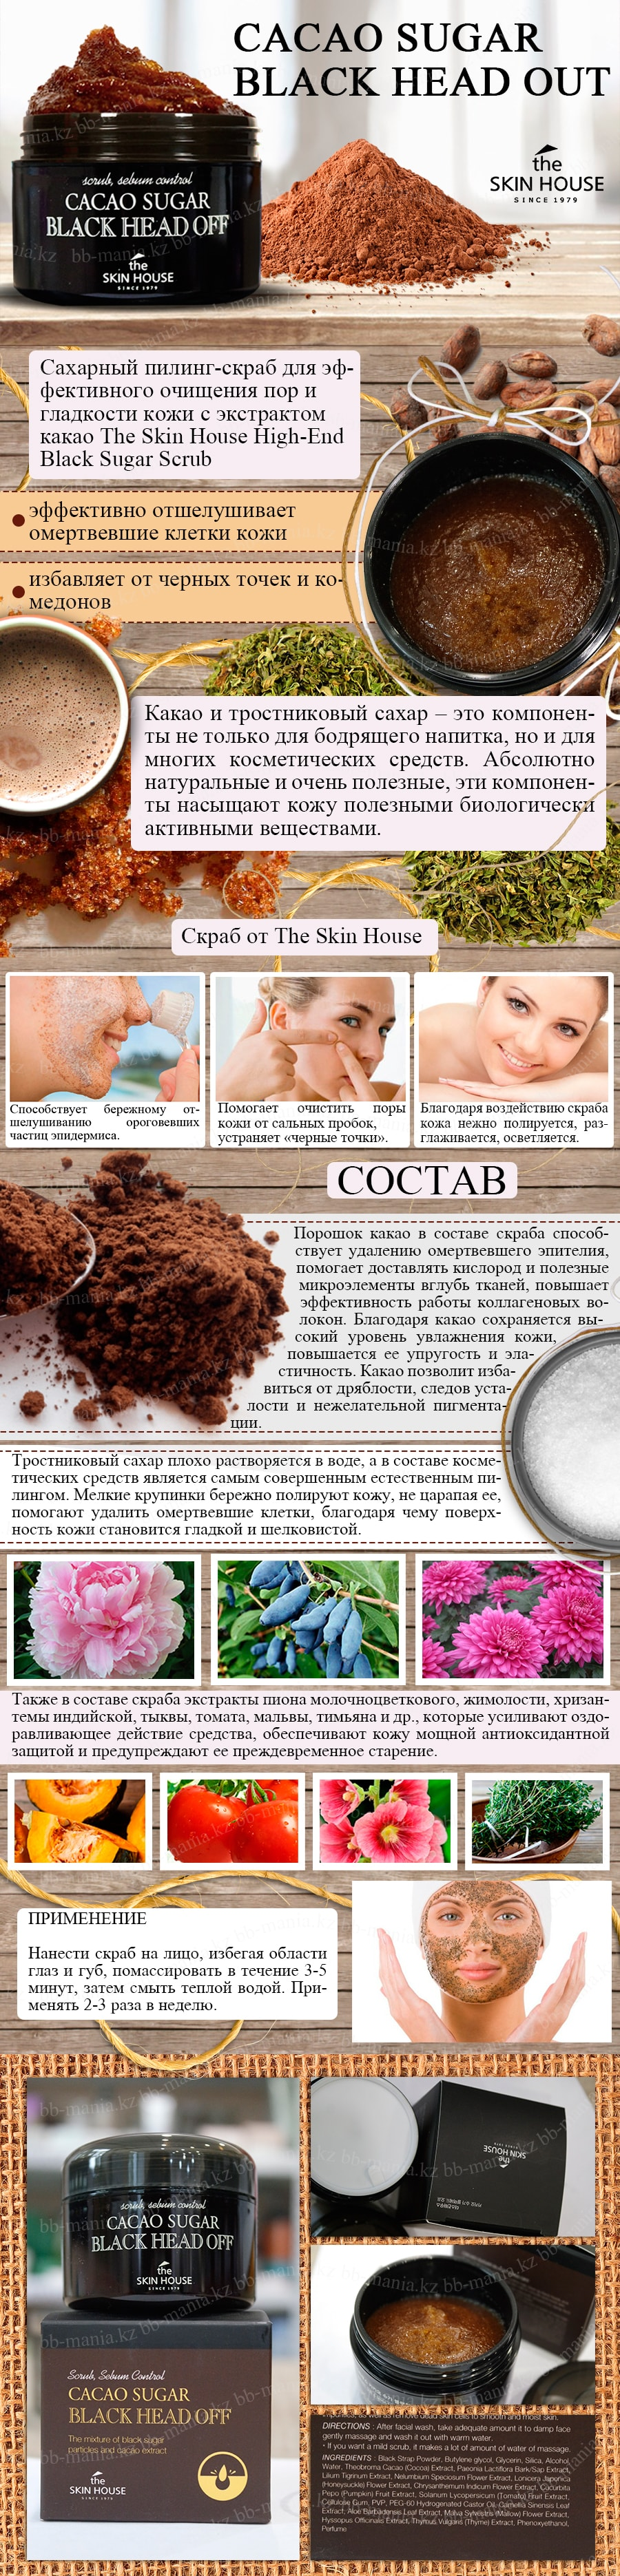 Cacao-Sugar-Black-Head-Out-[The-Skin-House]-min